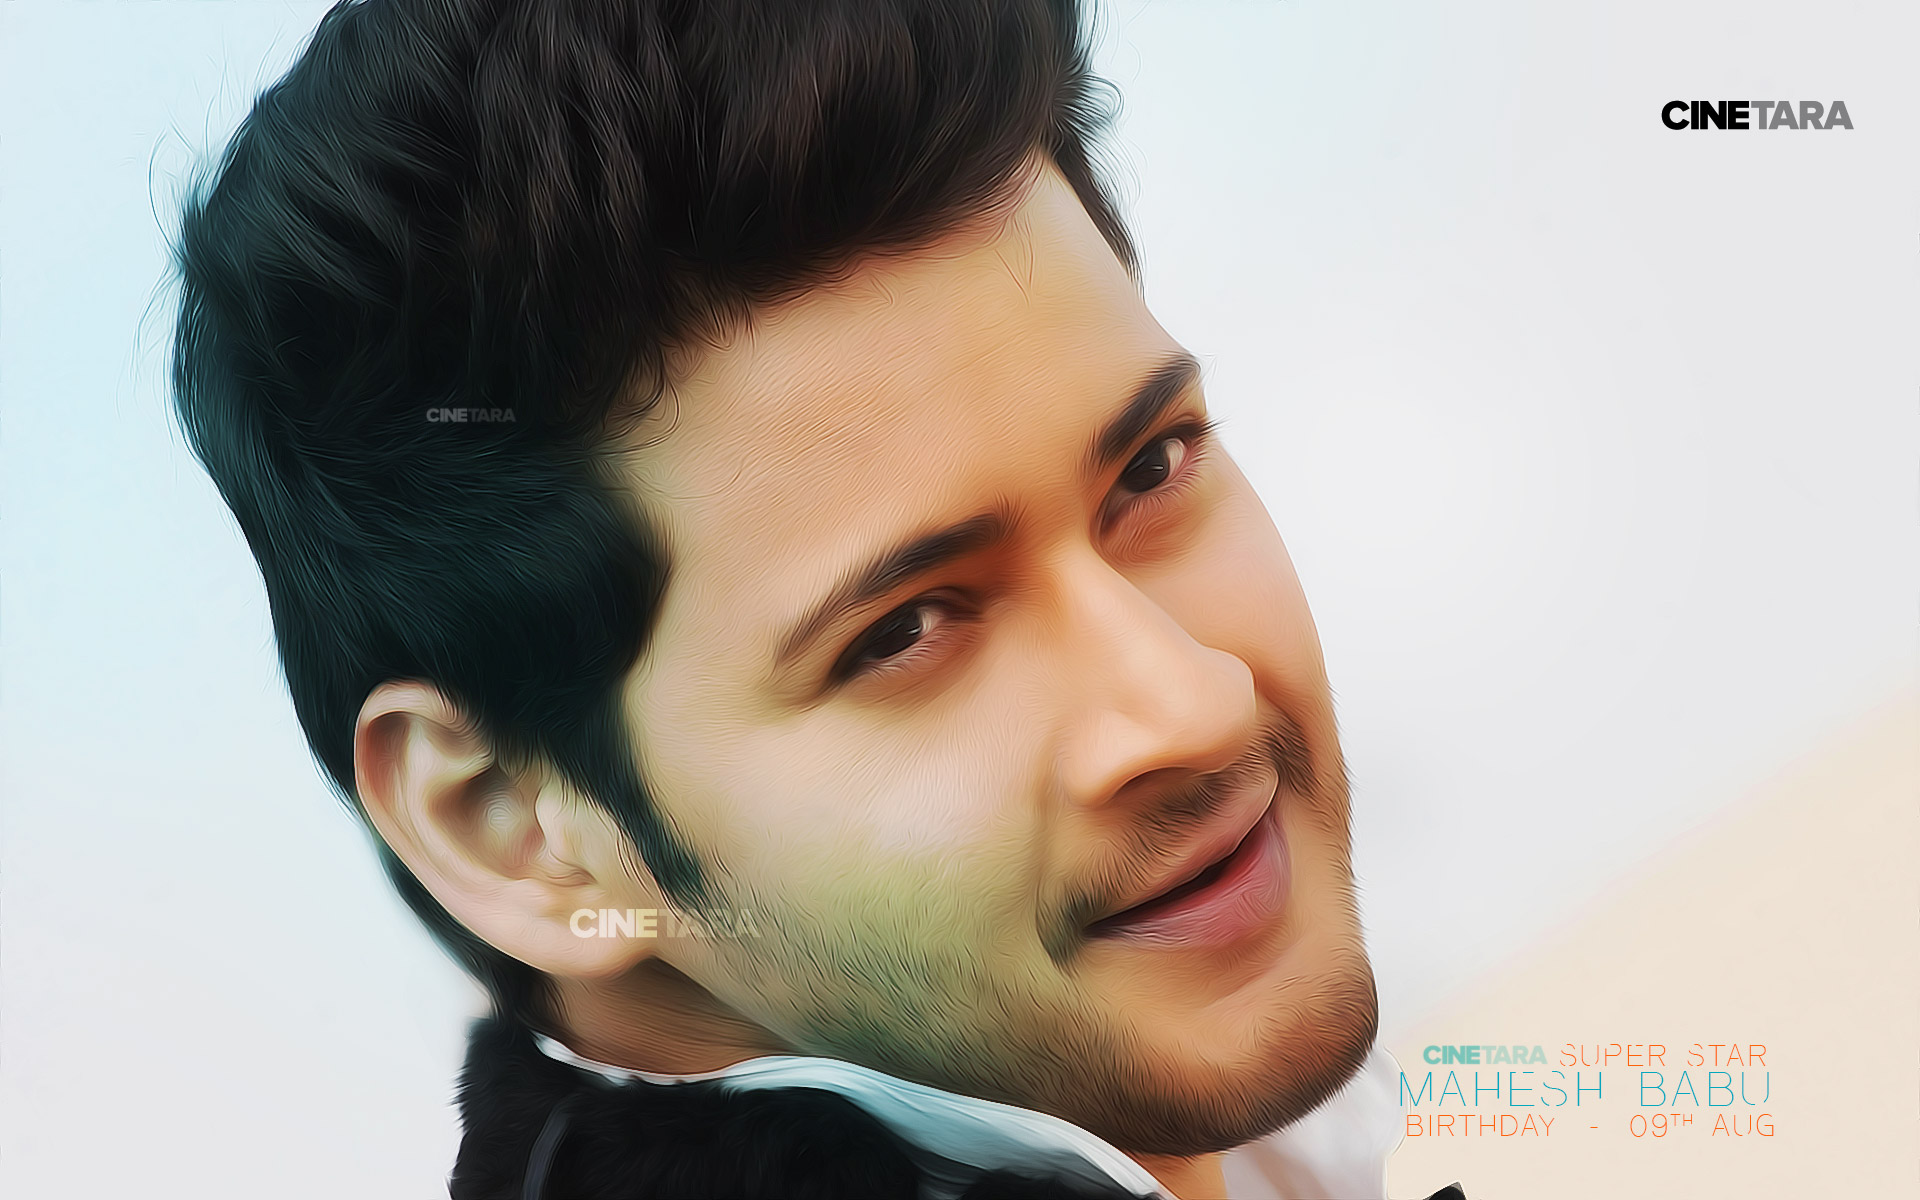 mahesh babu official facebook